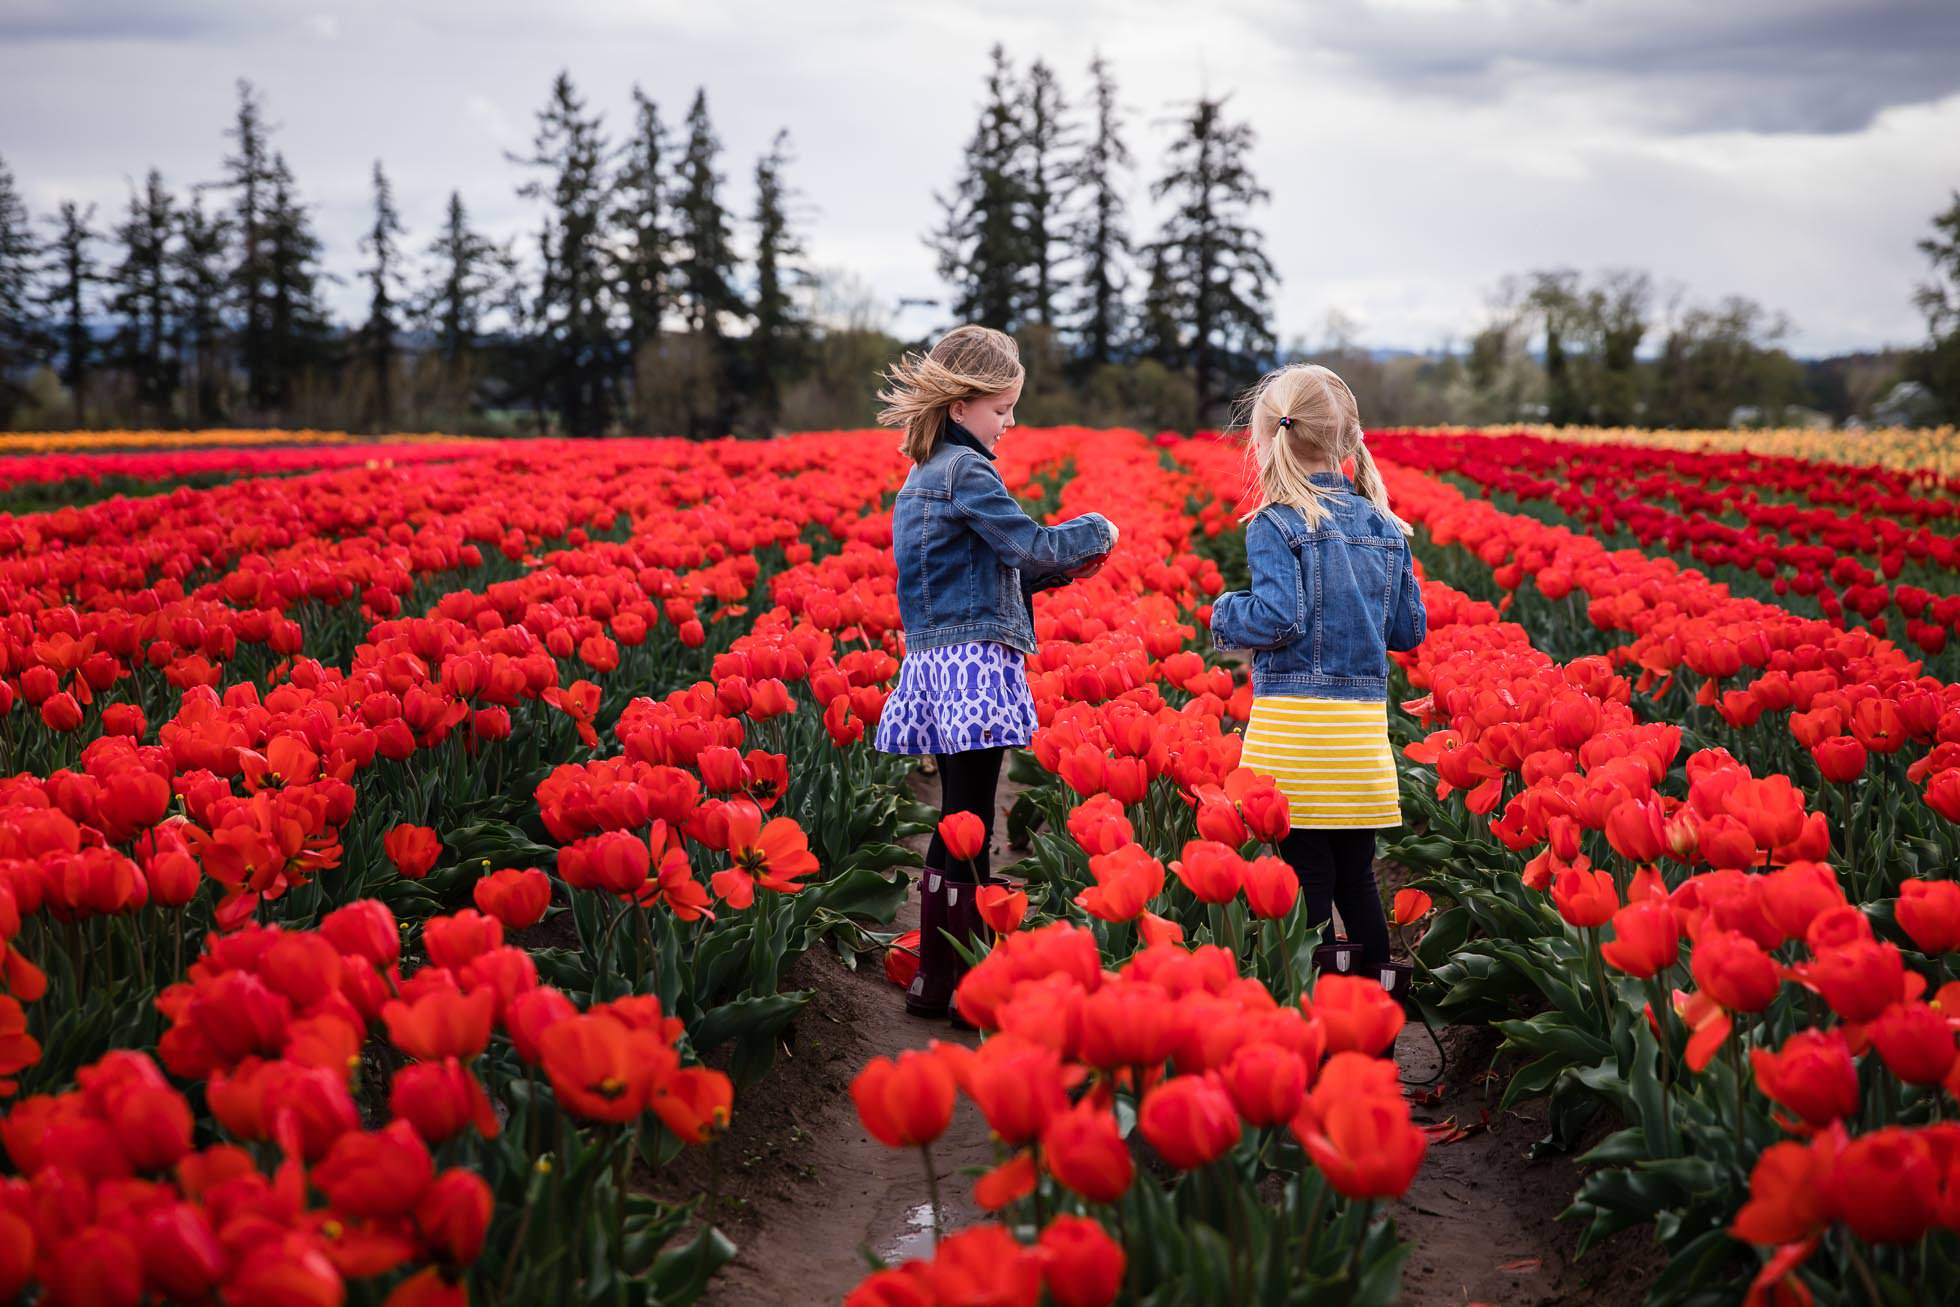 sisters in jean jackets standing in red tulip field in oregon at wood shoe tulip festival by rebecca hunnicutt farren premiere childrens lifestyle photographer in portland oregon